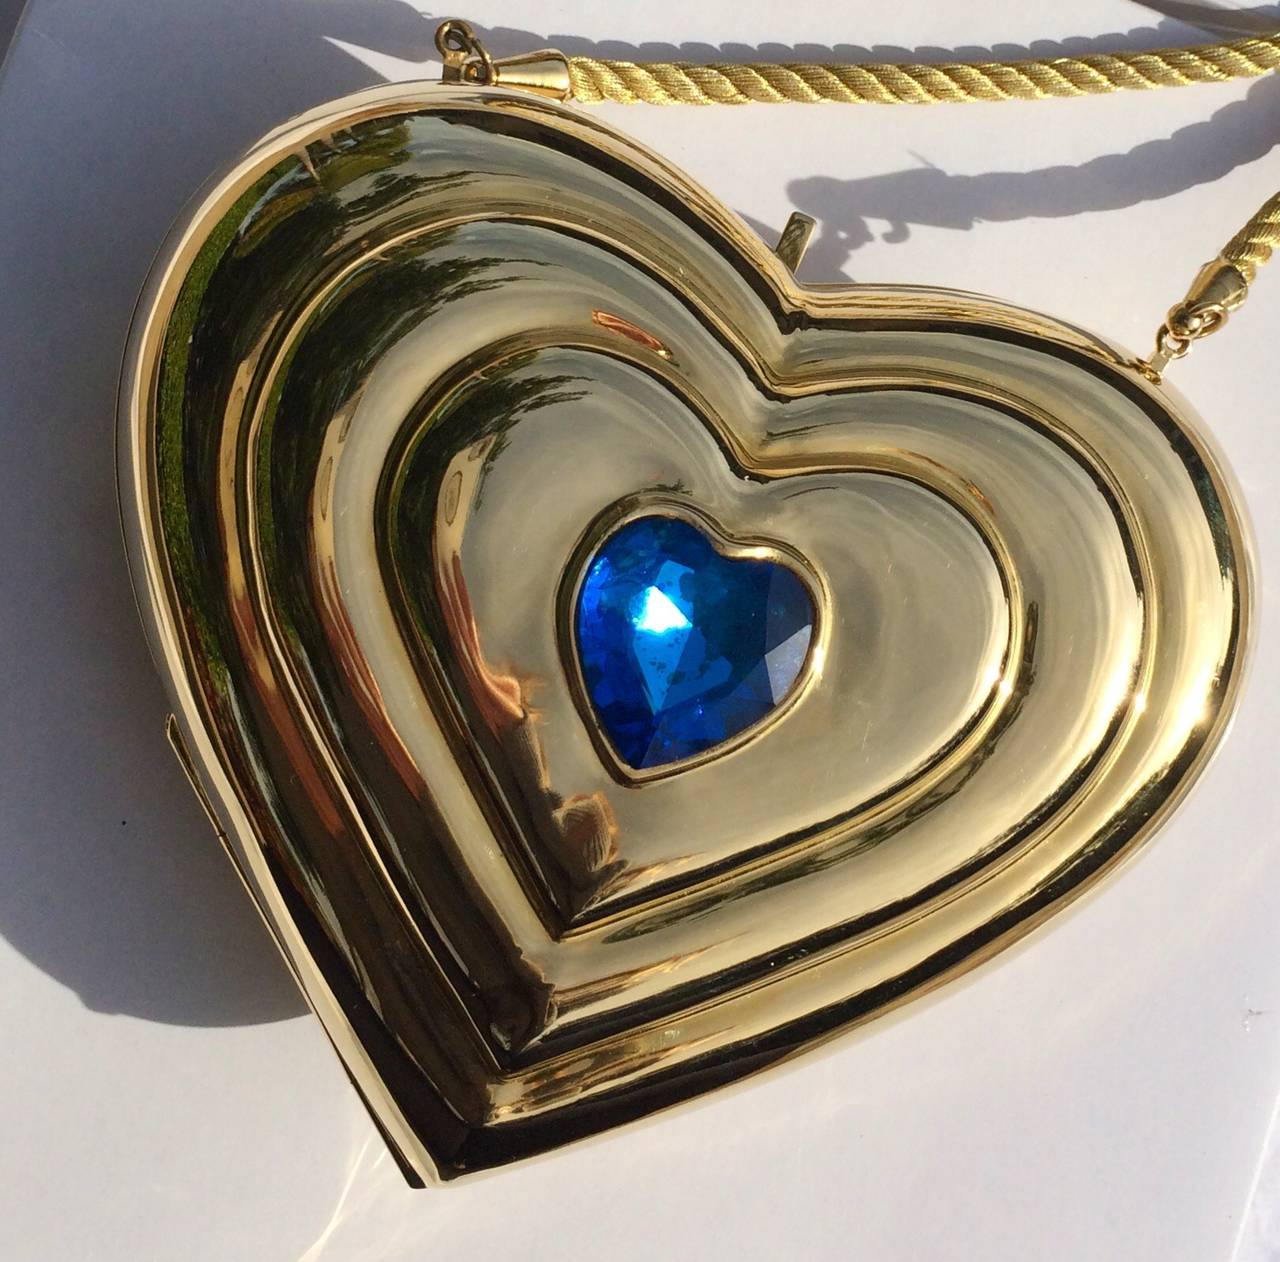 YSL / Yves Saint Laurent Heart Shaped Gold & Sapphire Crystal Minaudiere Bag 4